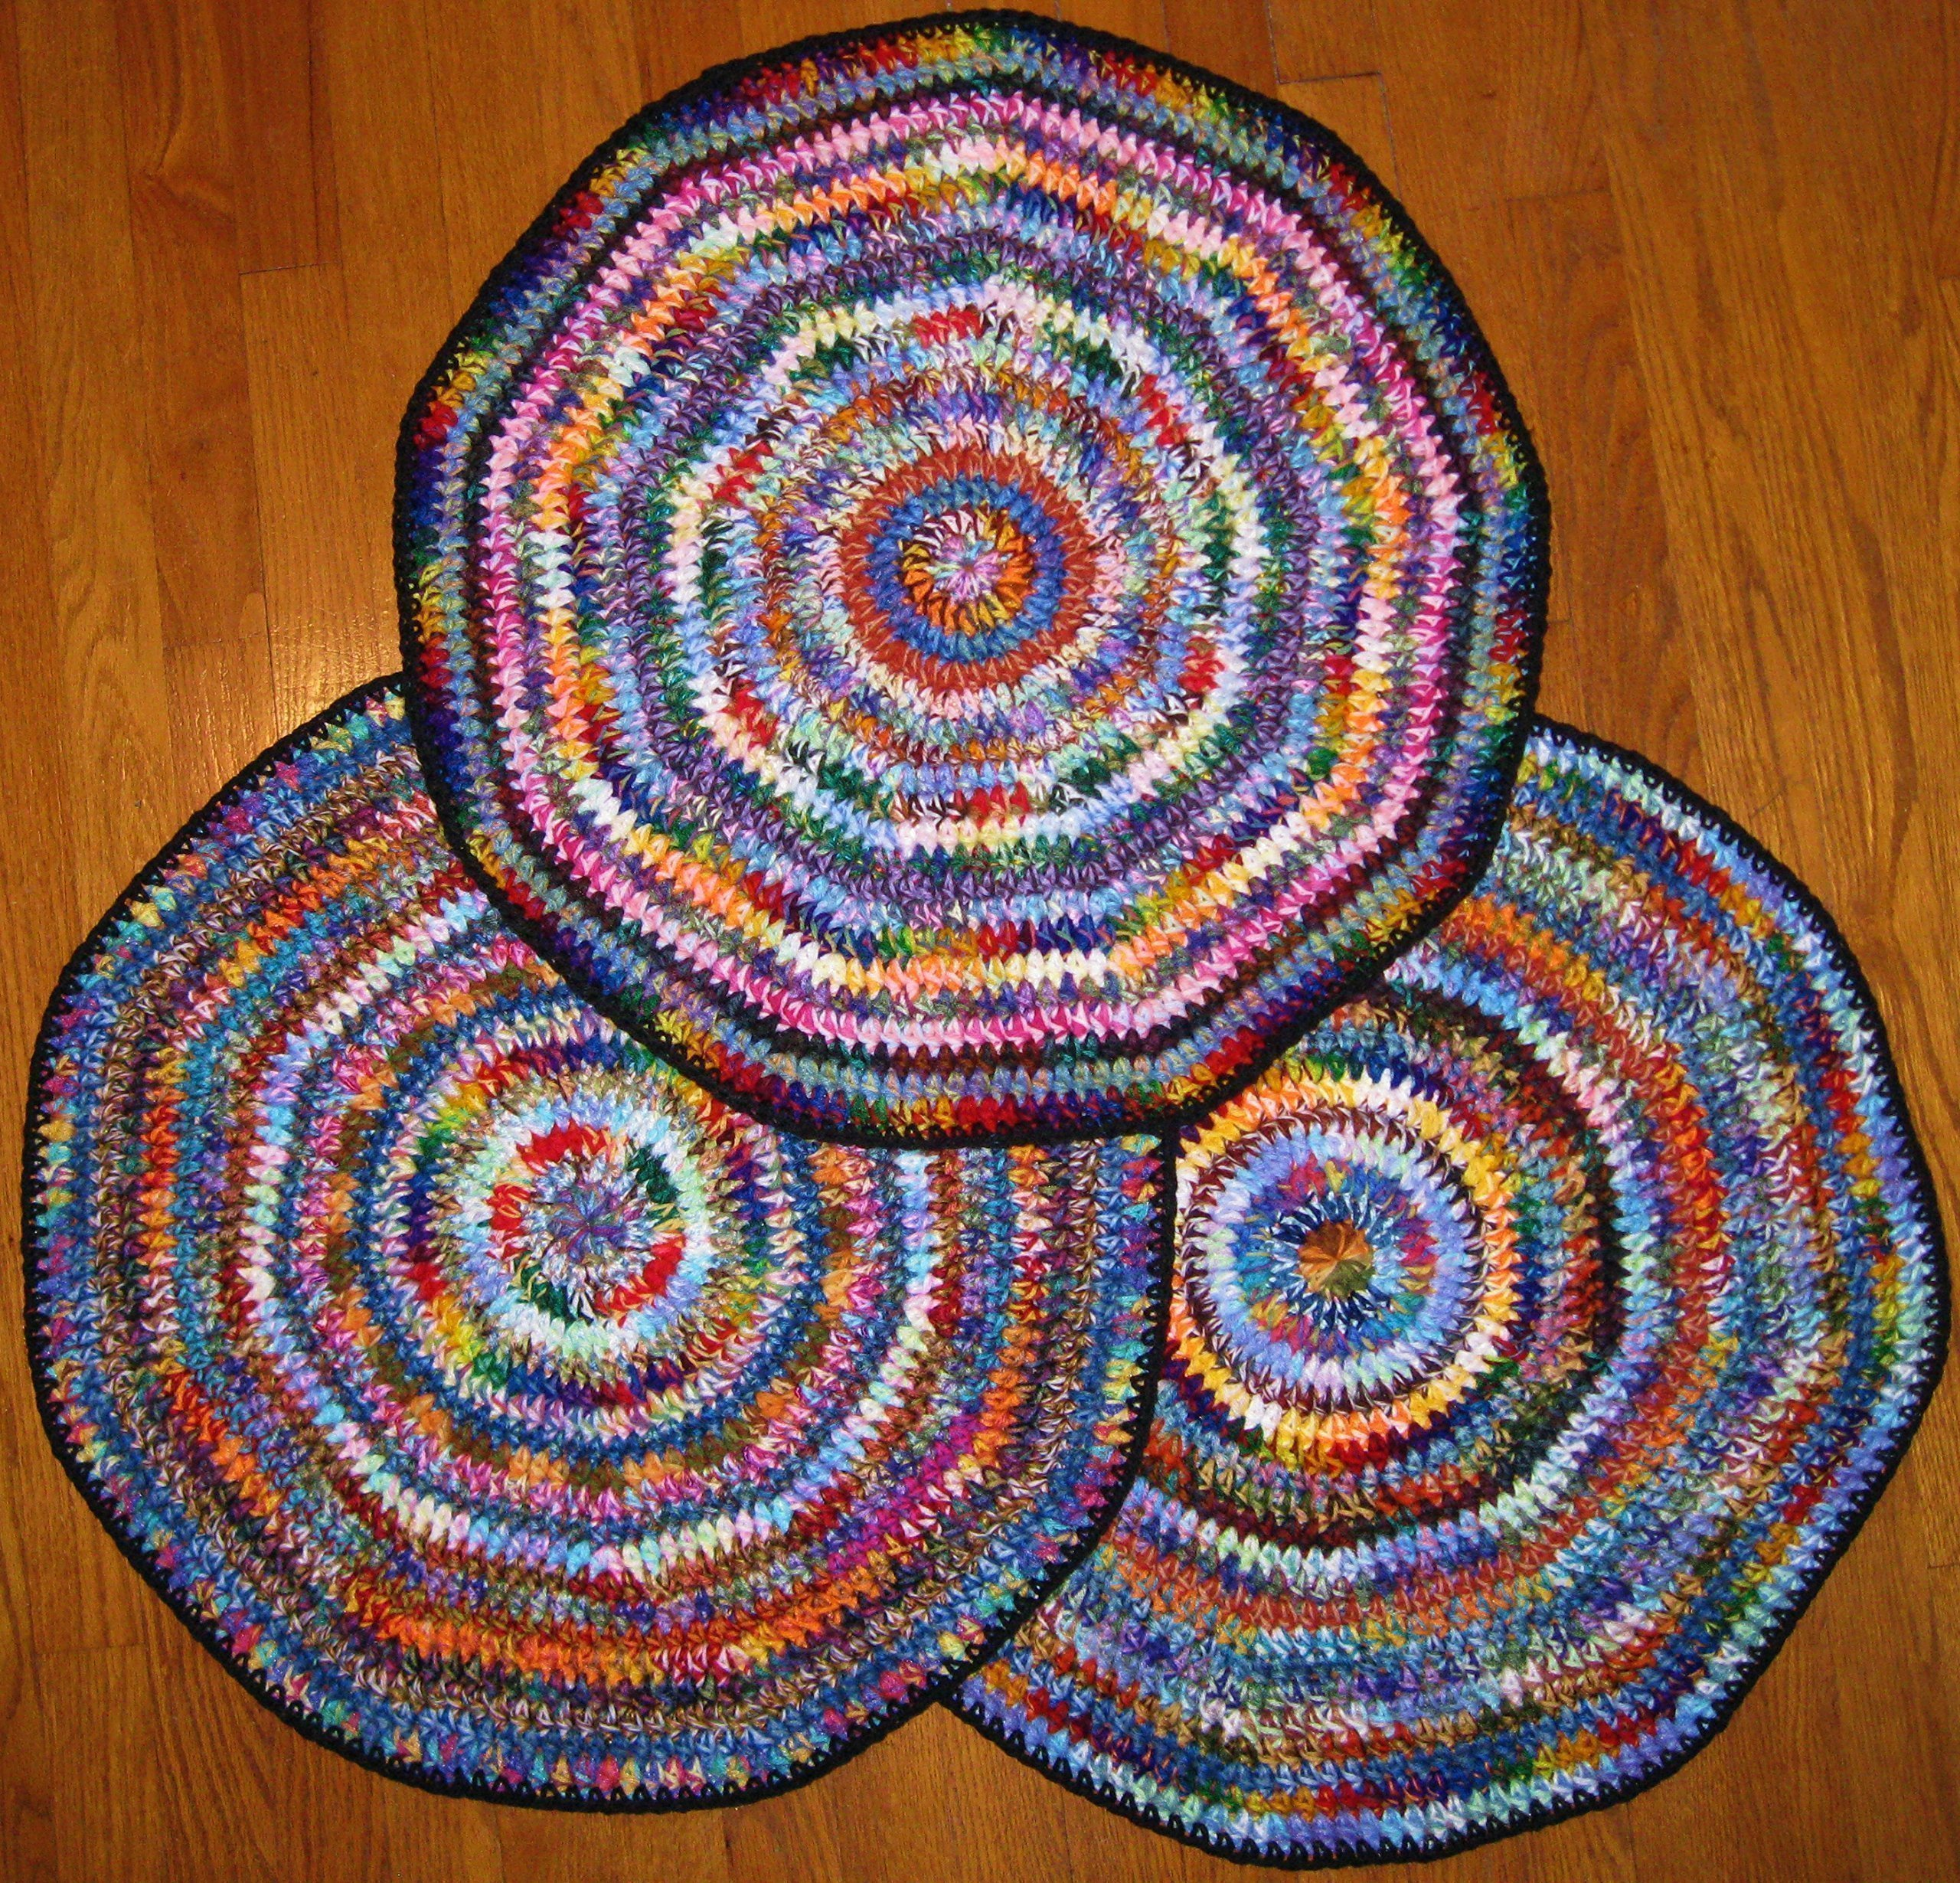 REMNANTS REBORN''Rainbow'' Pet Blanket - Every purchase ships a box of blankets to an animal shelter!